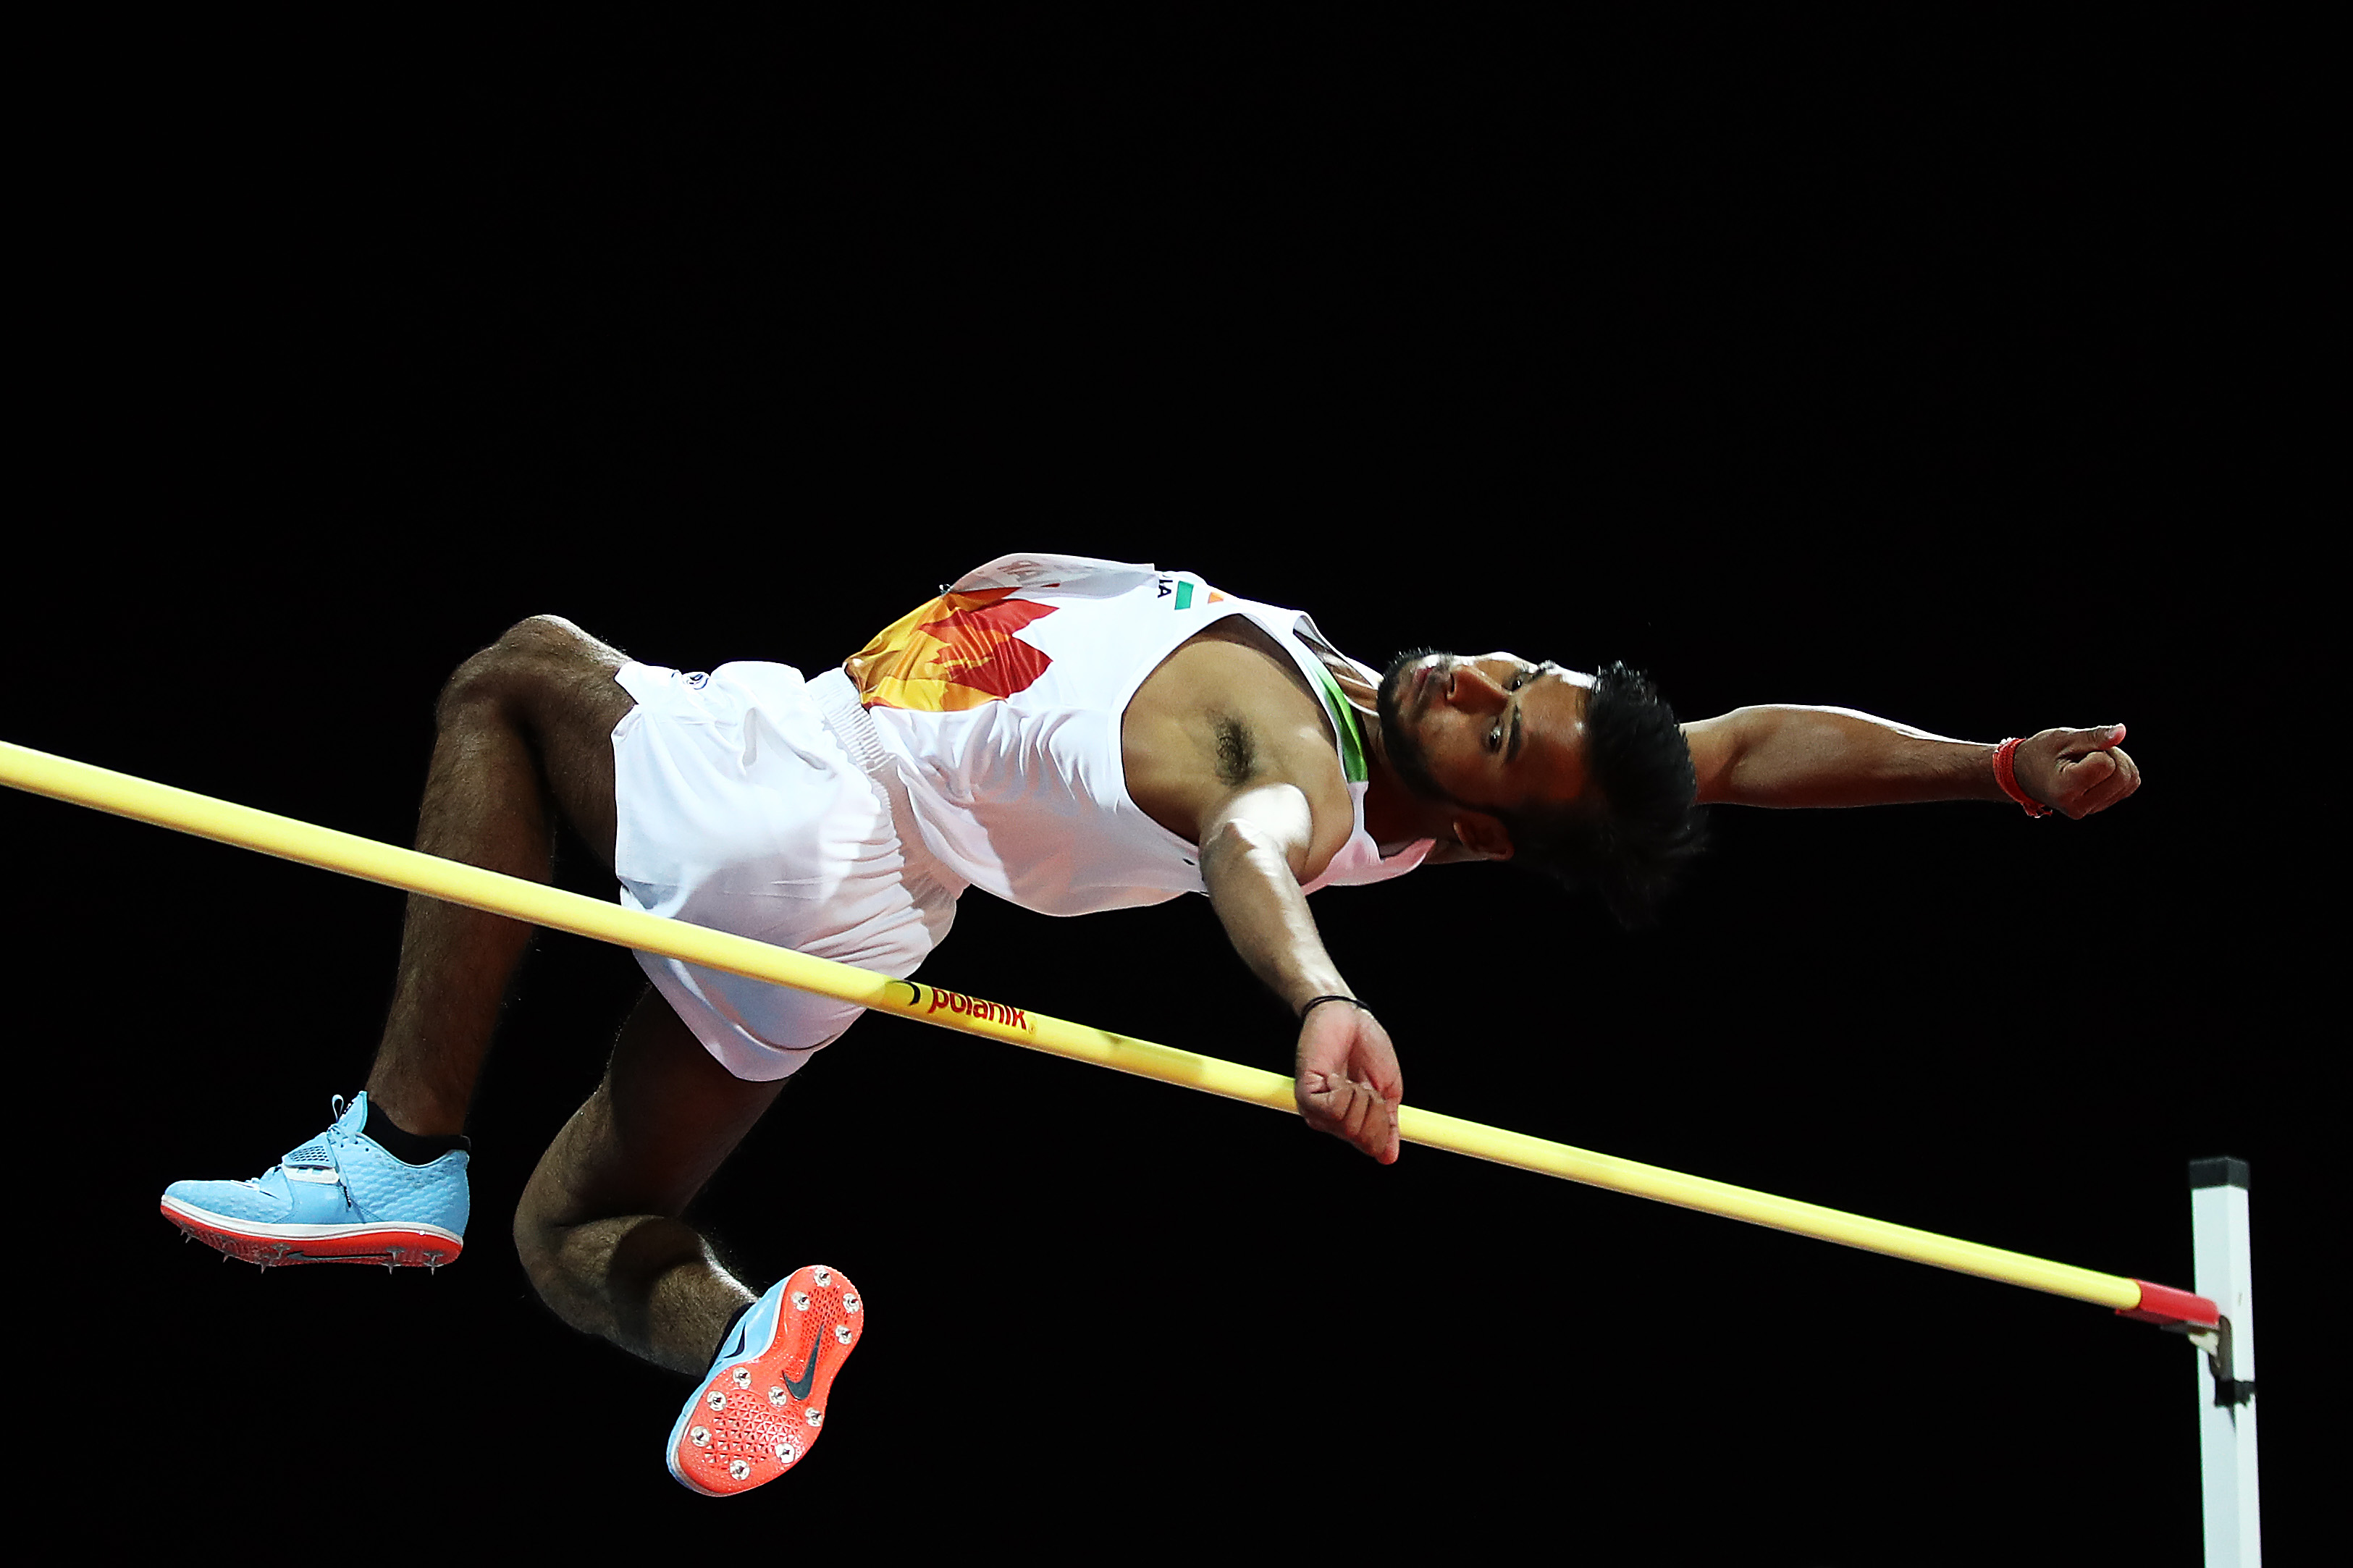 A new Asian Record for Praveen Kumar as he jumps 2.07m in Men's High Jump